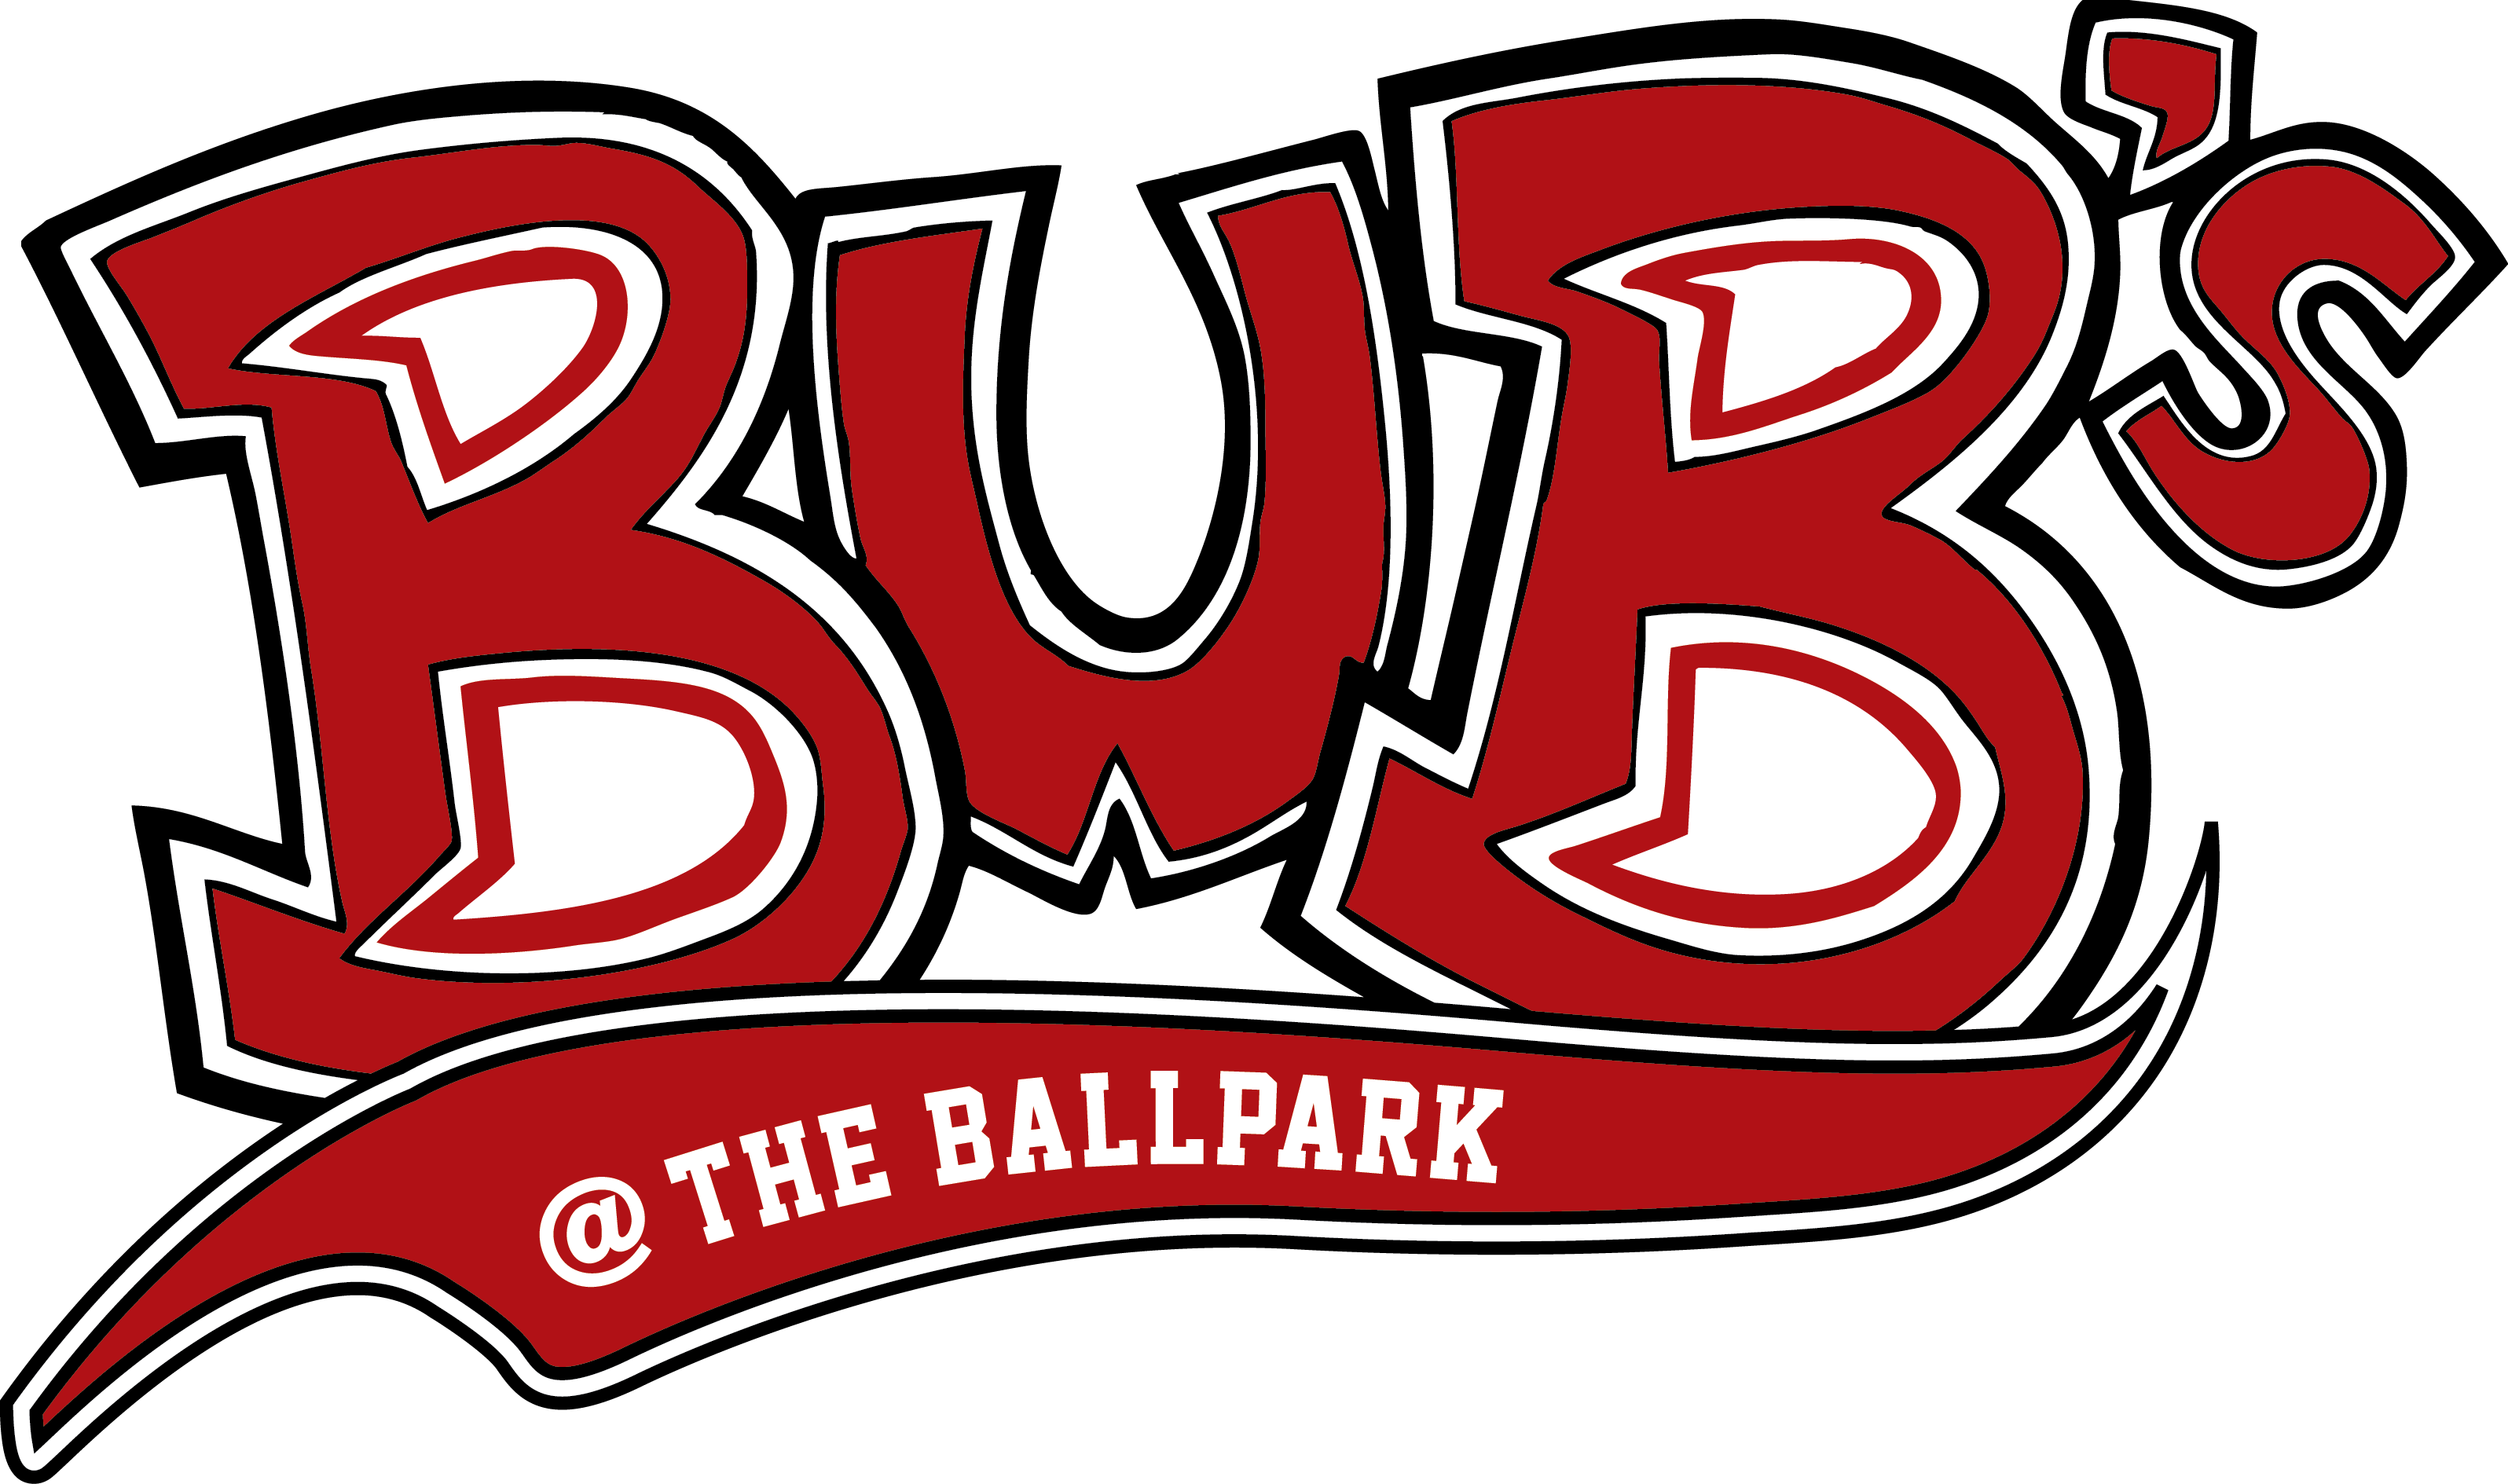 Bub's Logo (red_Ballpark_white)